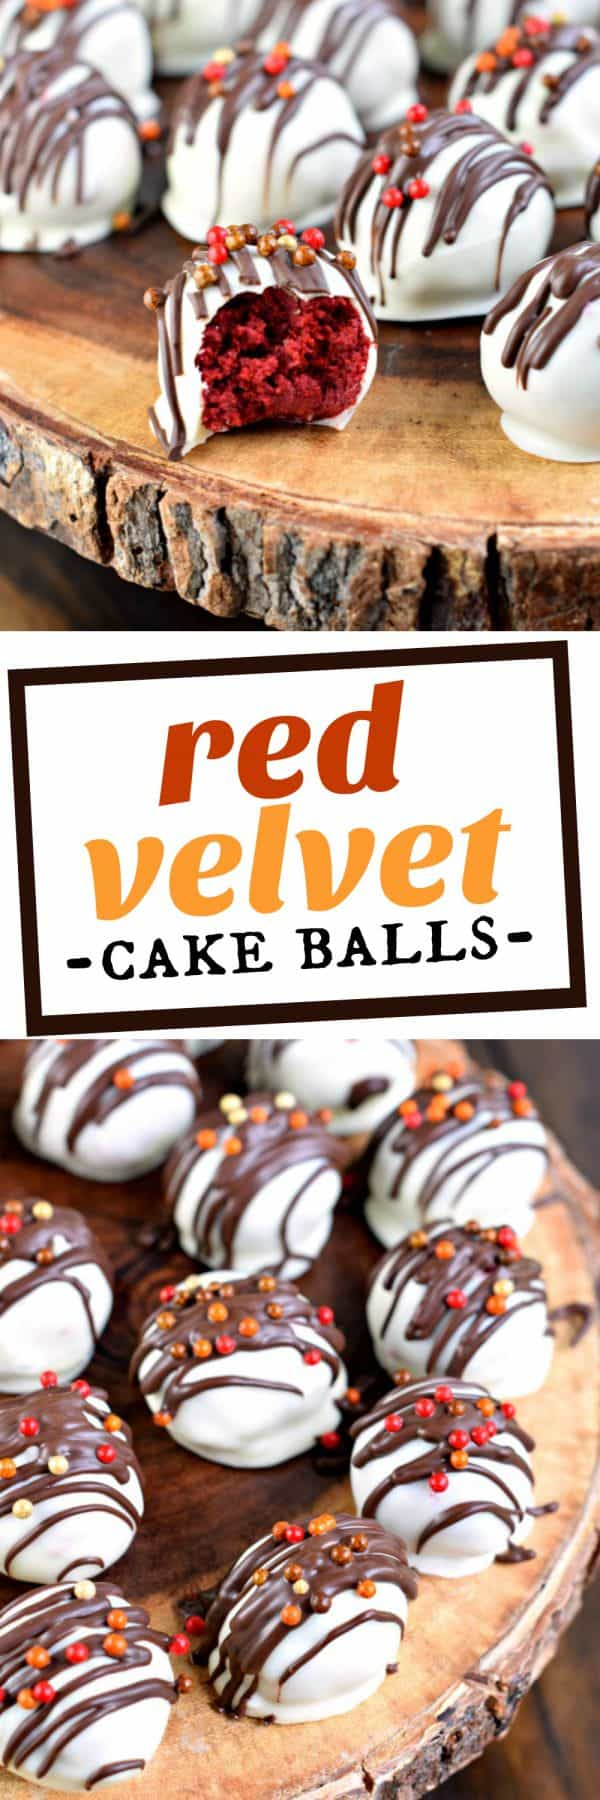 Red Velvet Cake Balls with cream cheese frosting, dunked in sweet white chocolate are the perfect Fall treat! Endless possibilities!